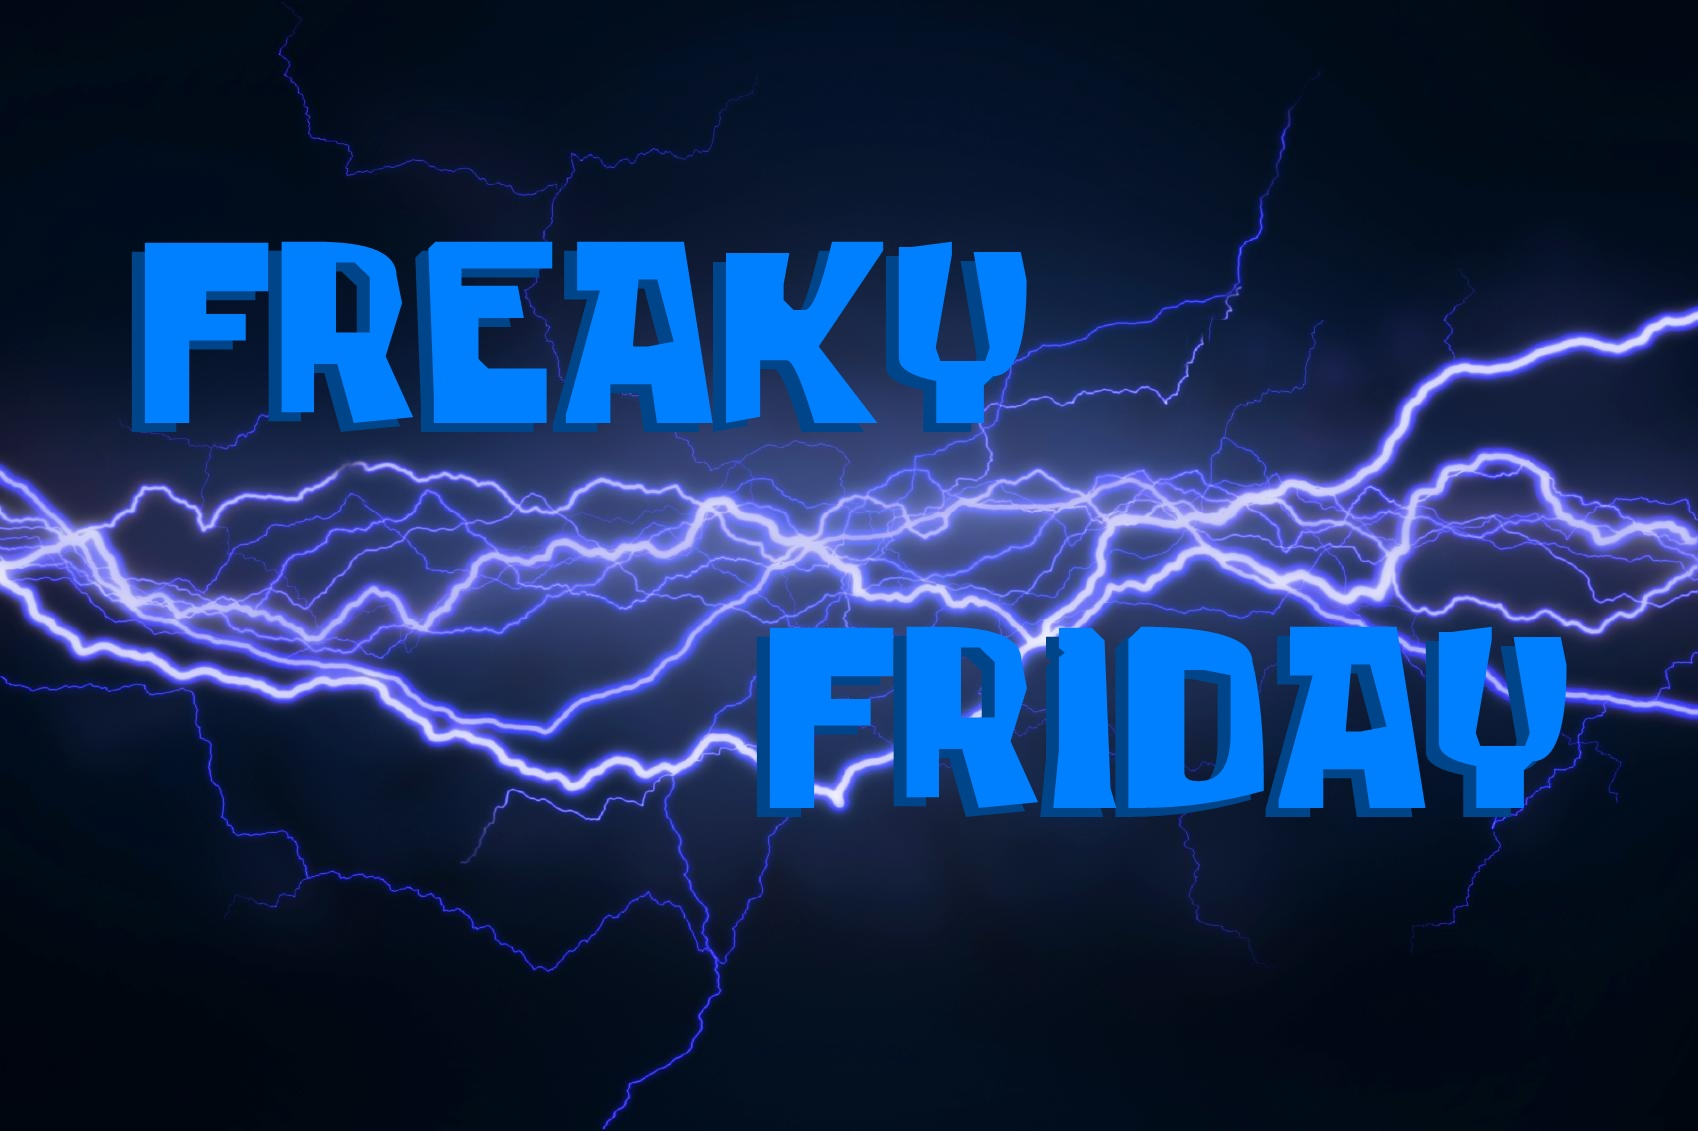 literary essay freaky friday Freaky friday essay & project ideas mary rodgers this study guide consists of approximately 35 pages of chapter summaries, quotes, character analysis, themes, and more - everything you need to sharpen your knowledge of freaky friday.